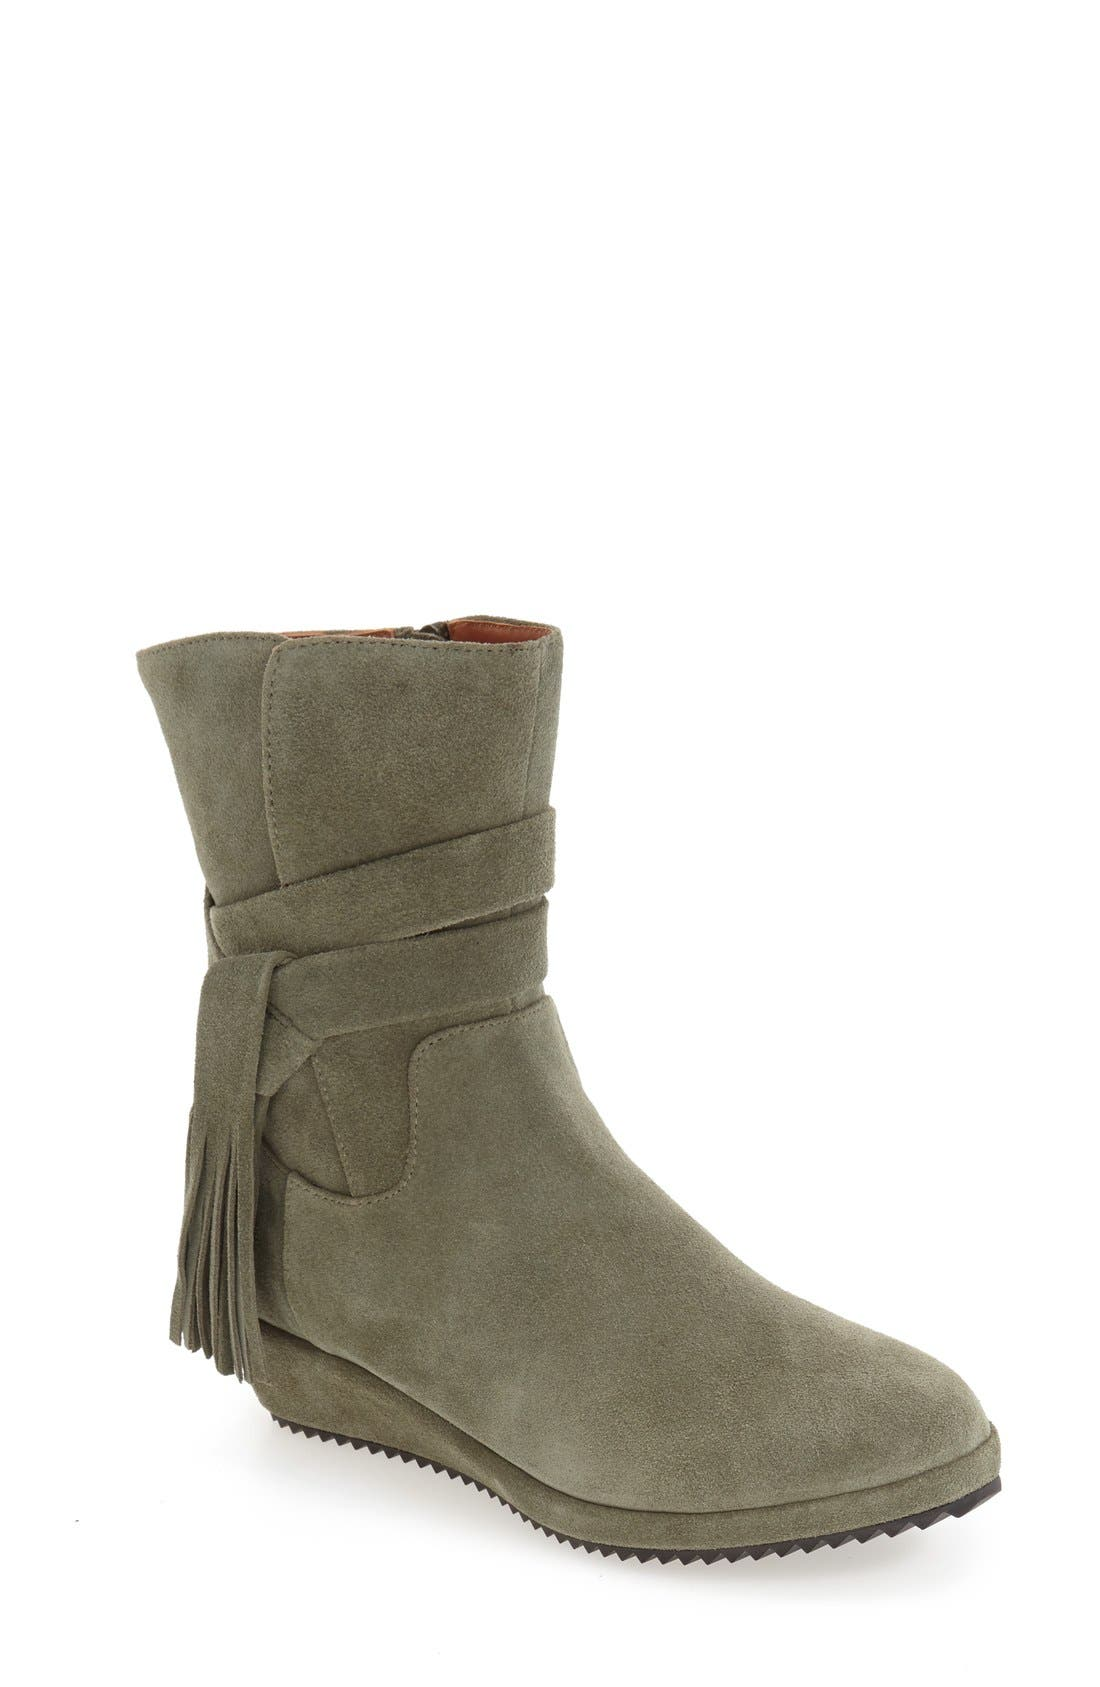 Alternate Image 1 Selected - L'Amour des Pieds 'Bernyce' Boot (Women)